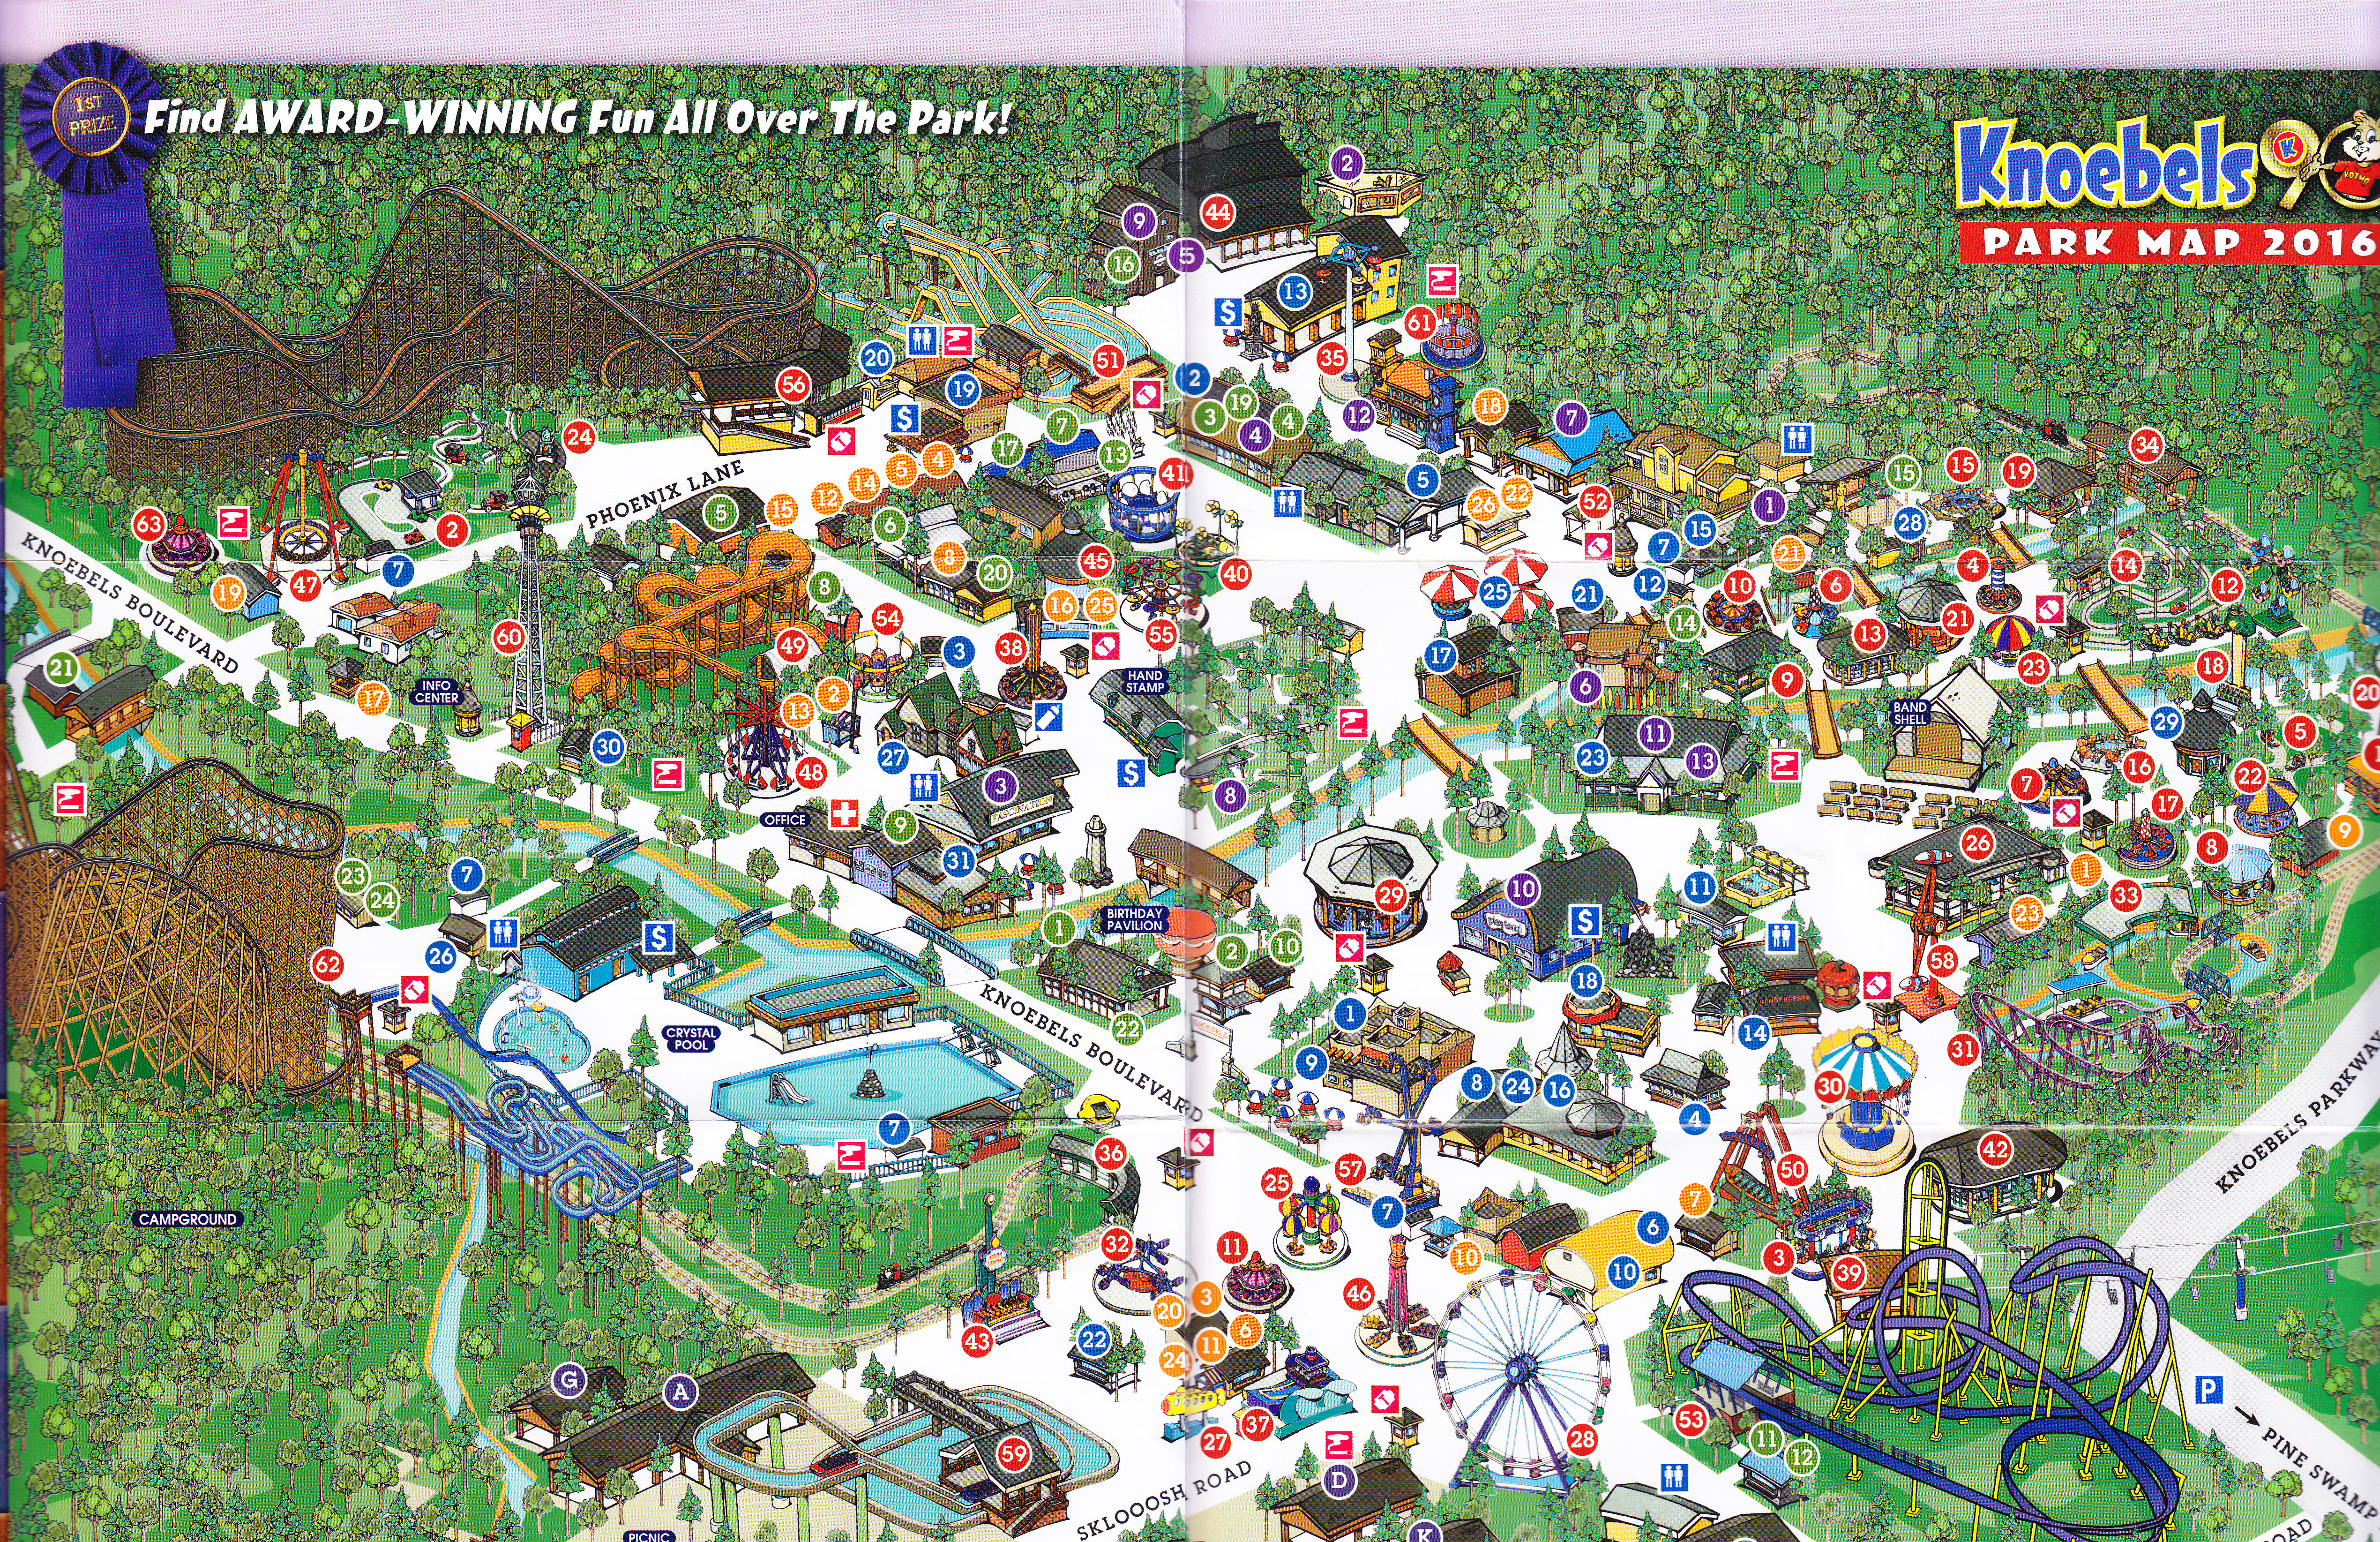 Hotels Near Knoebels Amut Park - All About The Hotel on great wolf lodge pa map, idlewild park pa map, hershey park pa map, dorney park pa map, sesame place pa map,